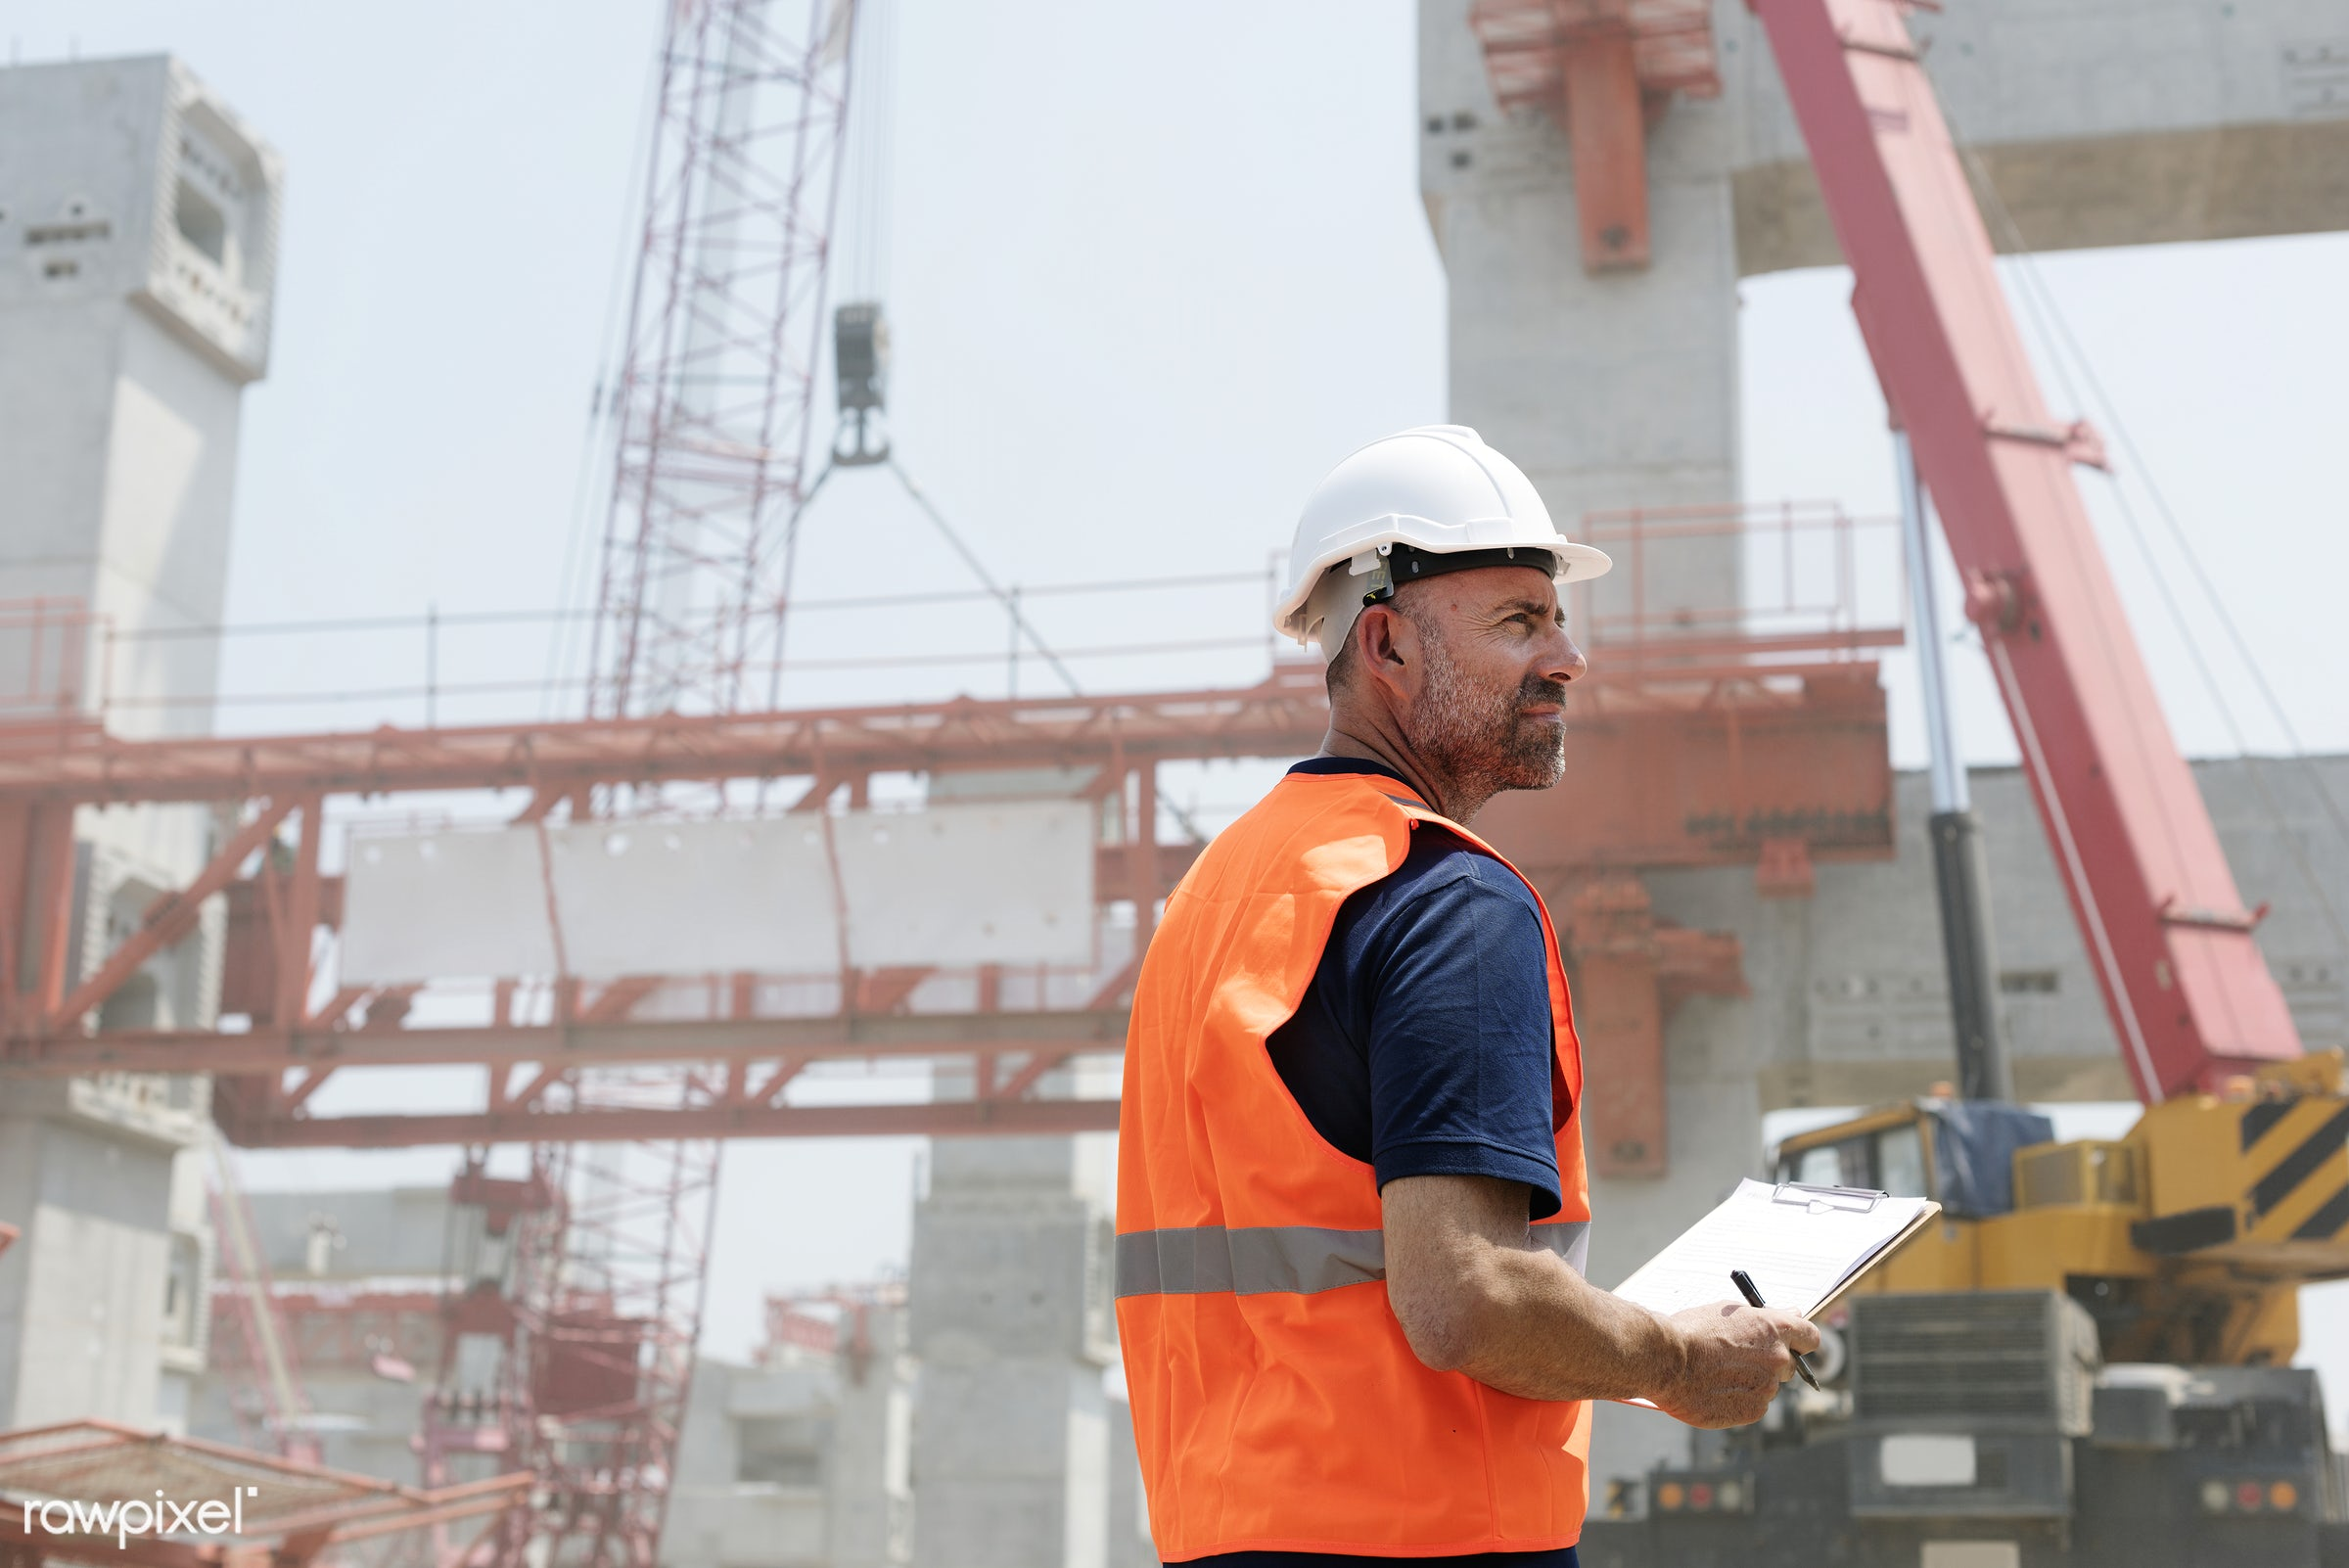 Site engineer on a construction site - construction, engineer, engineering, worker, architecture, blueprint, board, building...